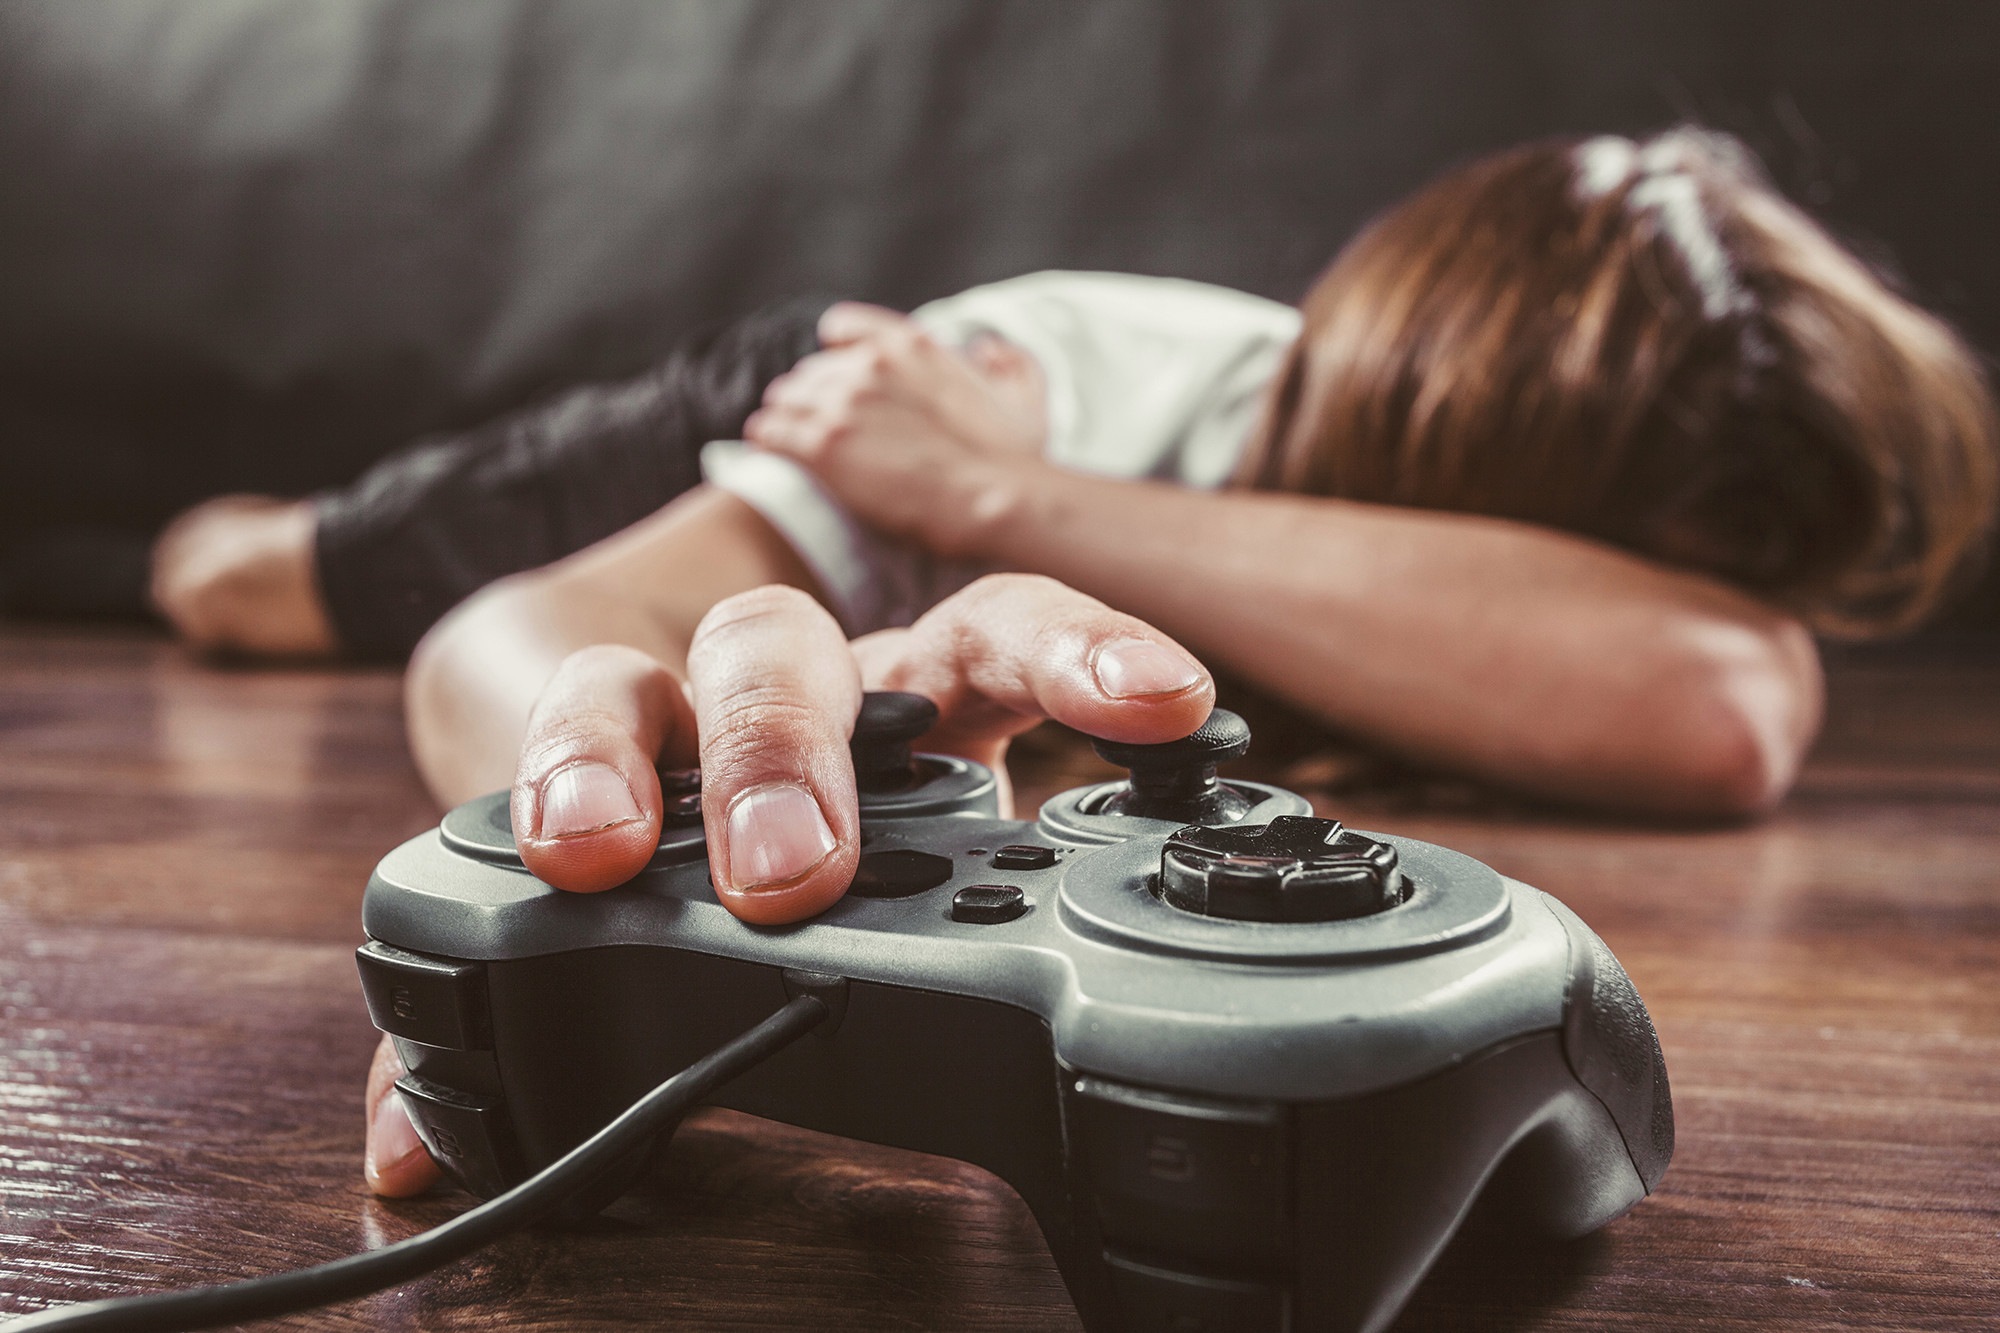 Why Video Game Addiction Happens